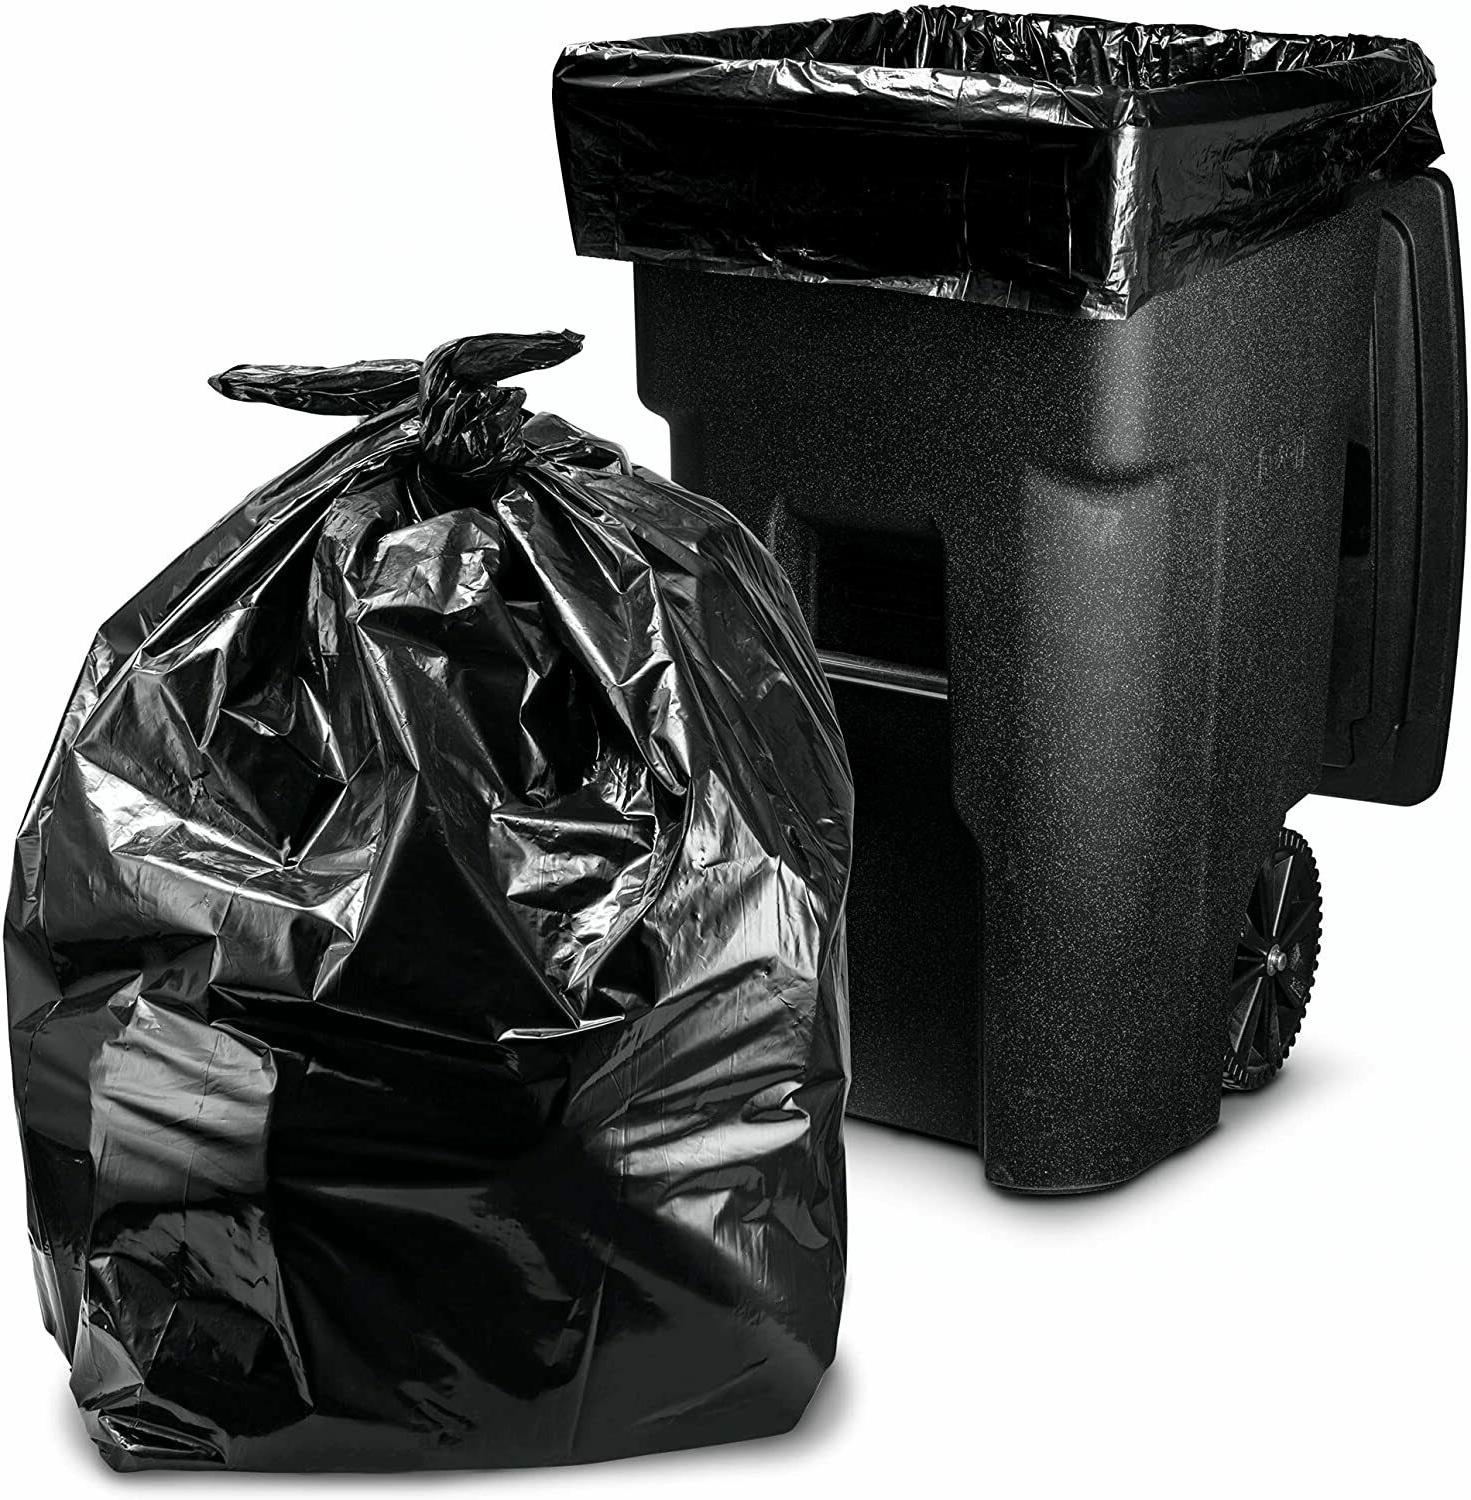 96 gallon wheeled trash can liners garbage